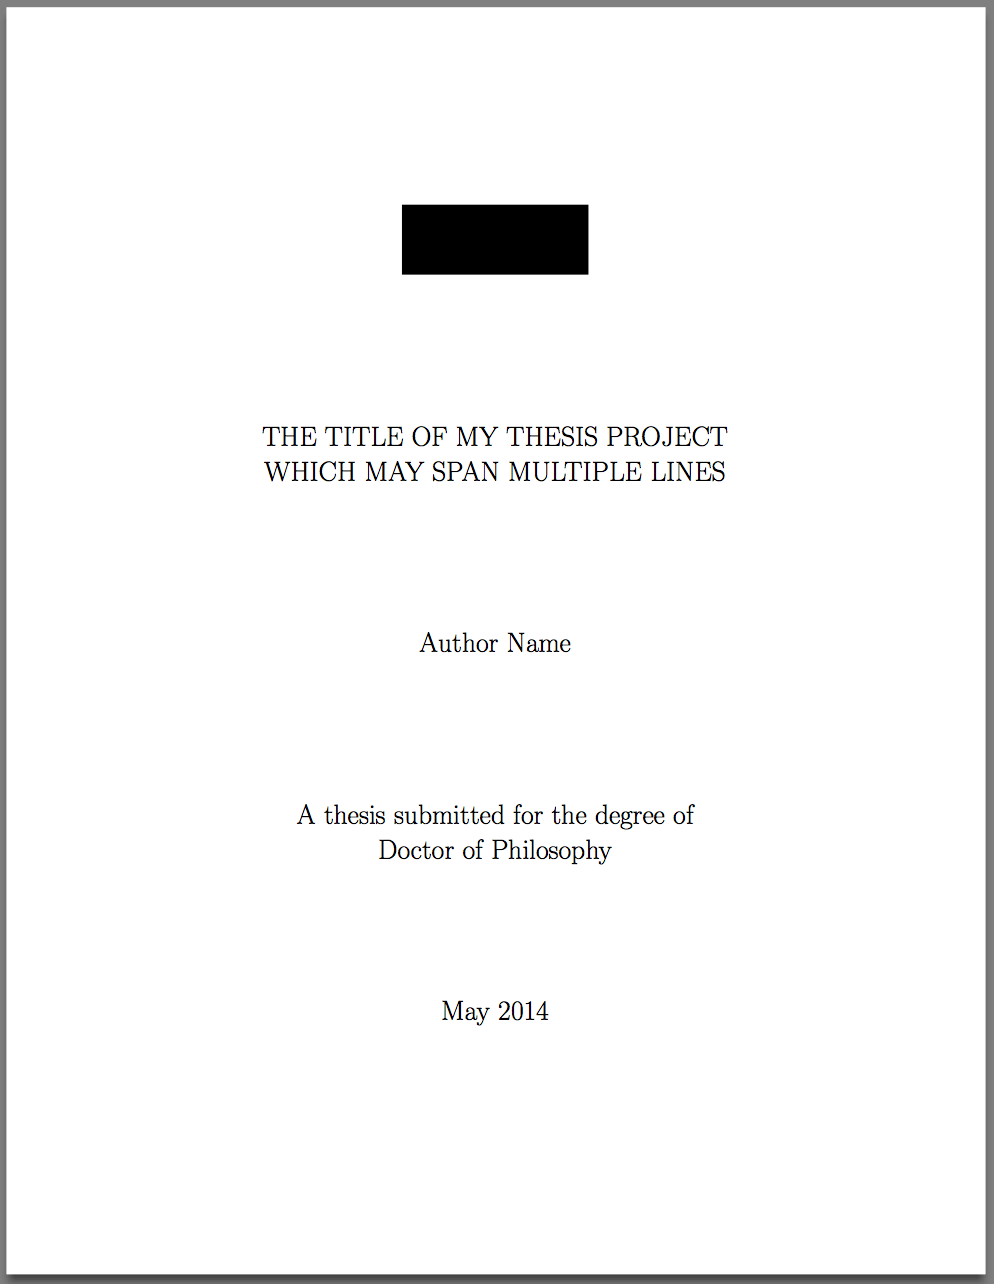 Psu phd thesis latex